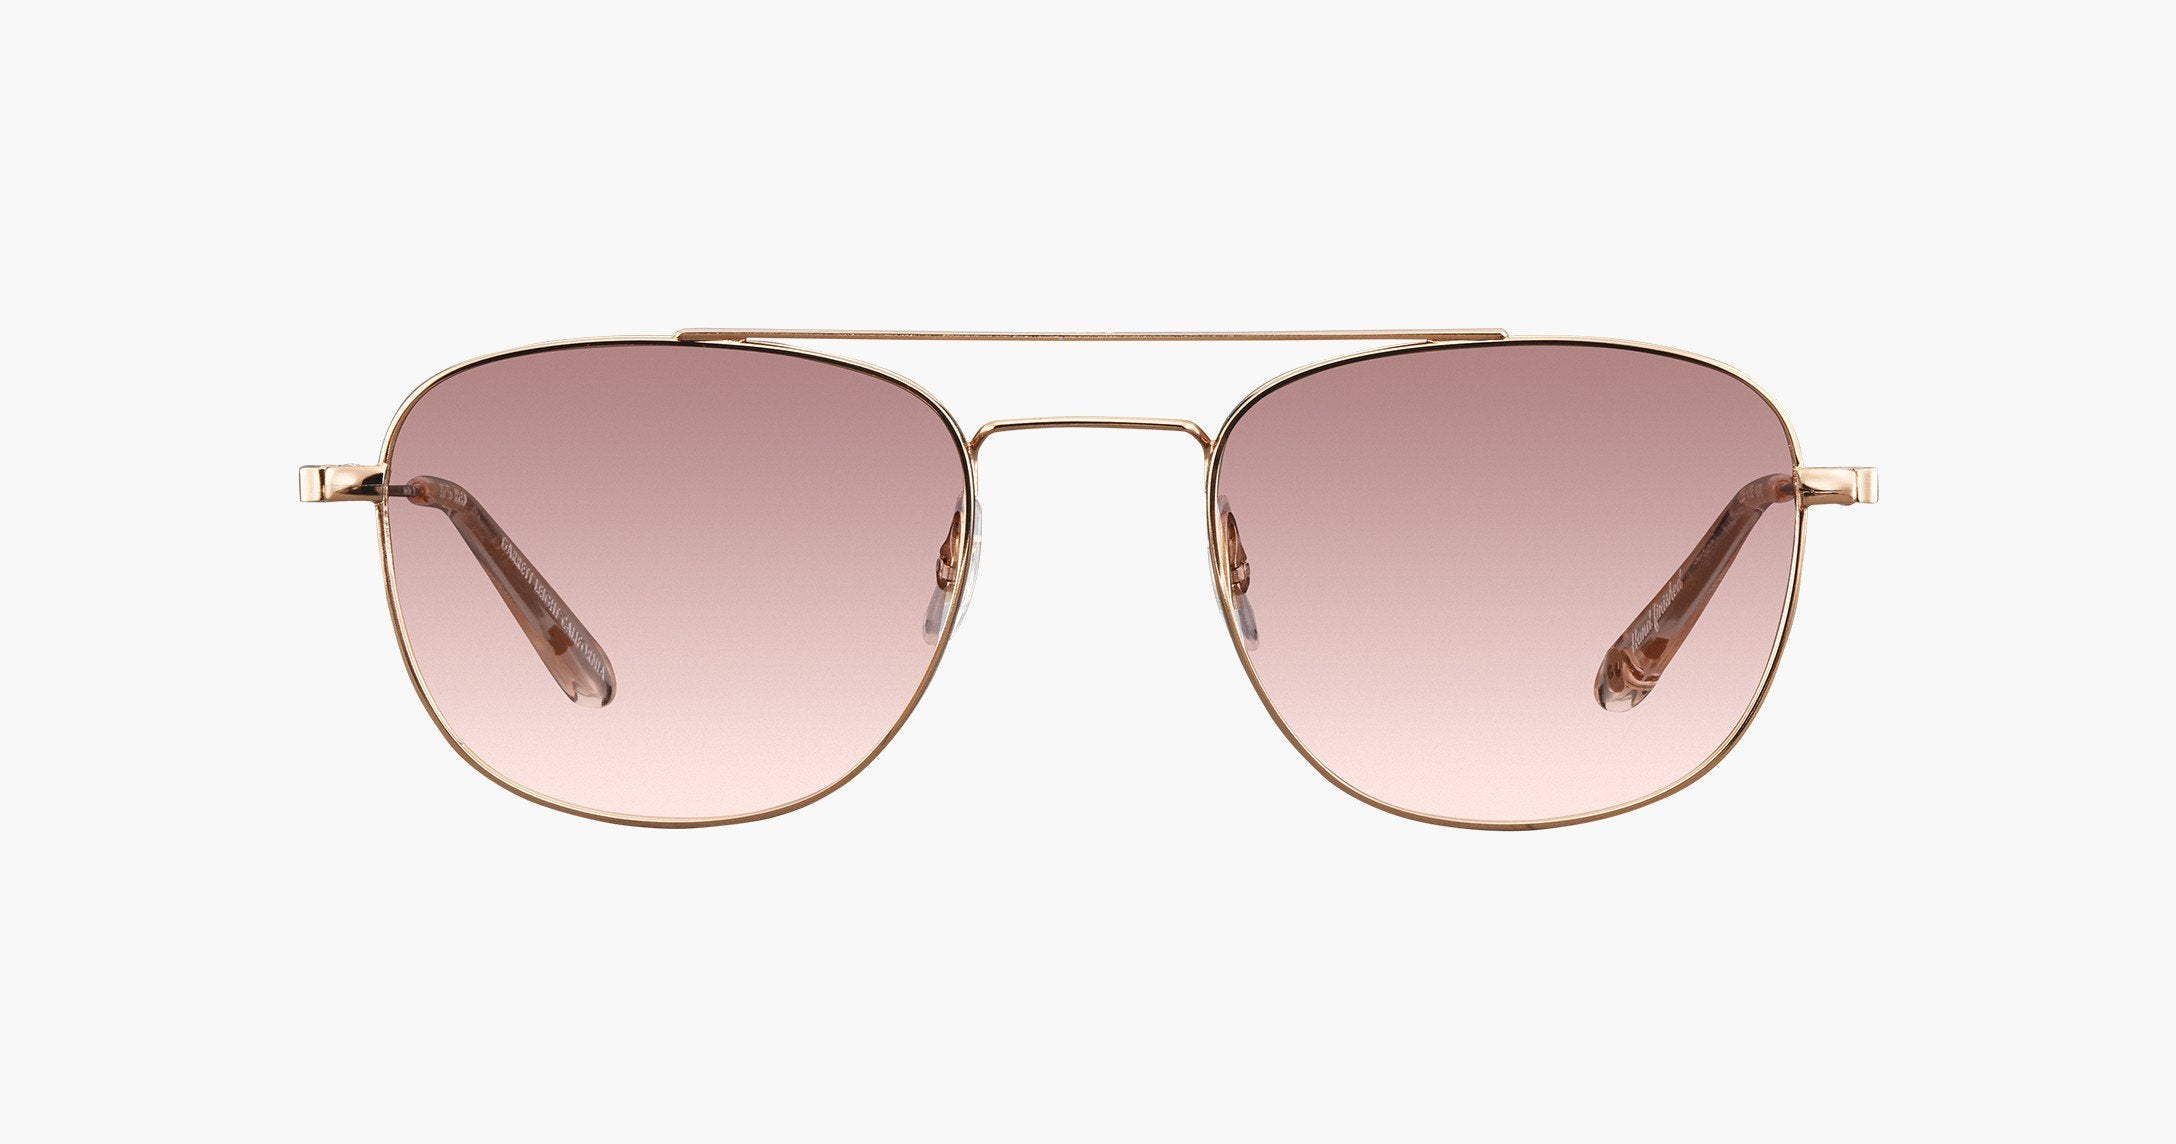 Cool Sunglasses for Women -Daas Optique